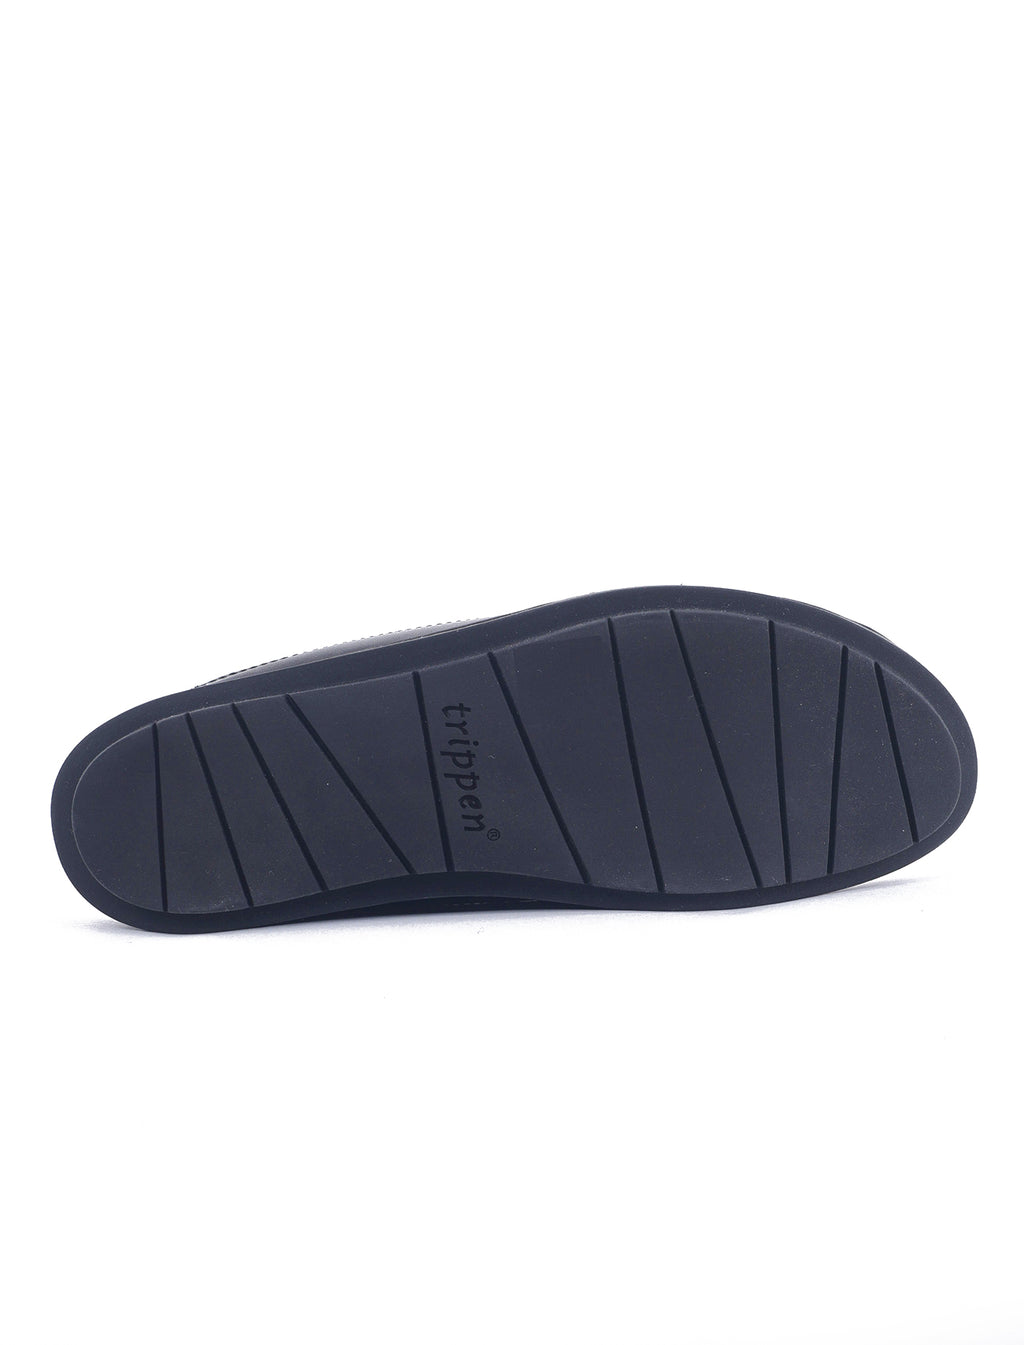 Trippen Shoes Inertia Swan, Black VST